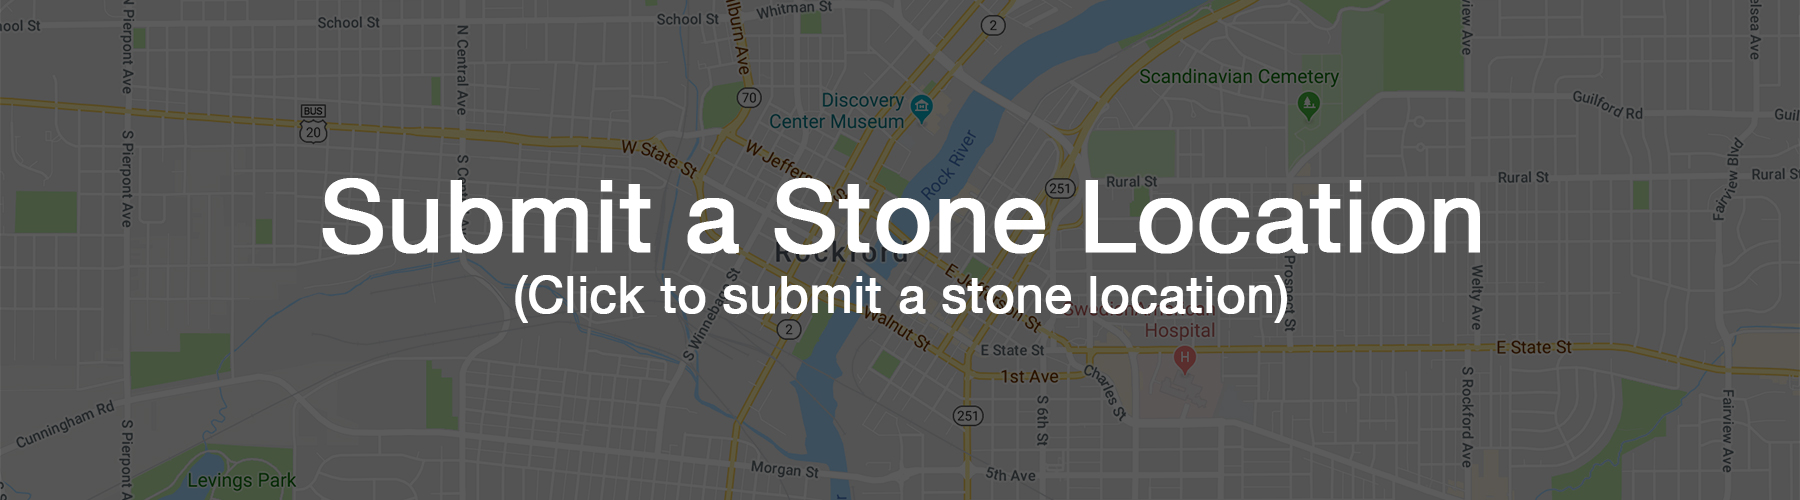 submit stone location